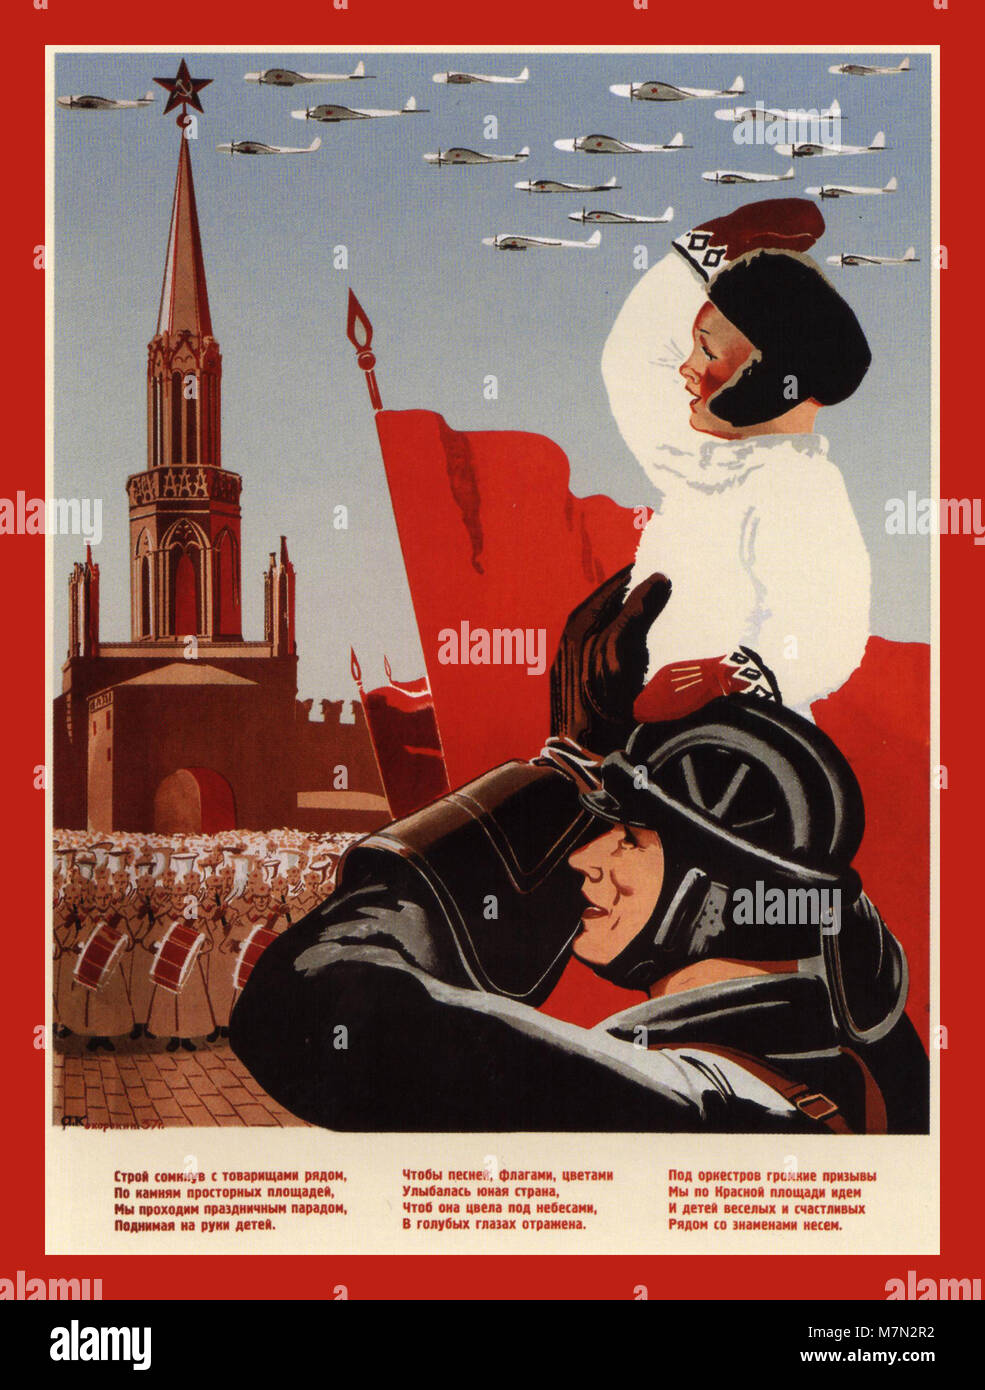 1930's Pre-War Vintage Russian propaganda poster 1937. Illustrates a soldier holding up a young Russian child - Stock Image